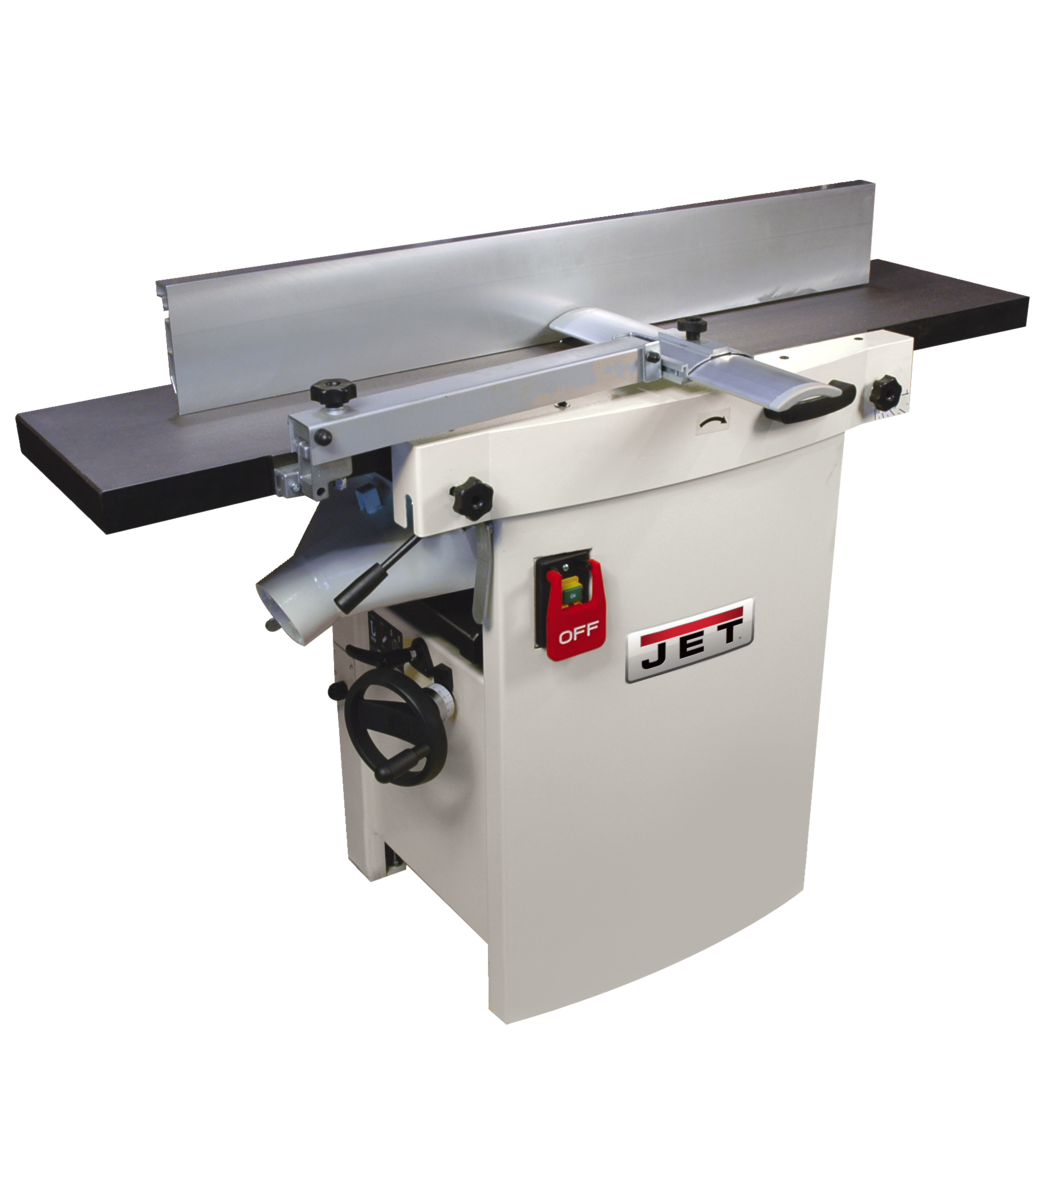 "JJP-12, 12"" Planer/Jointer 3HP 1PH 230V"